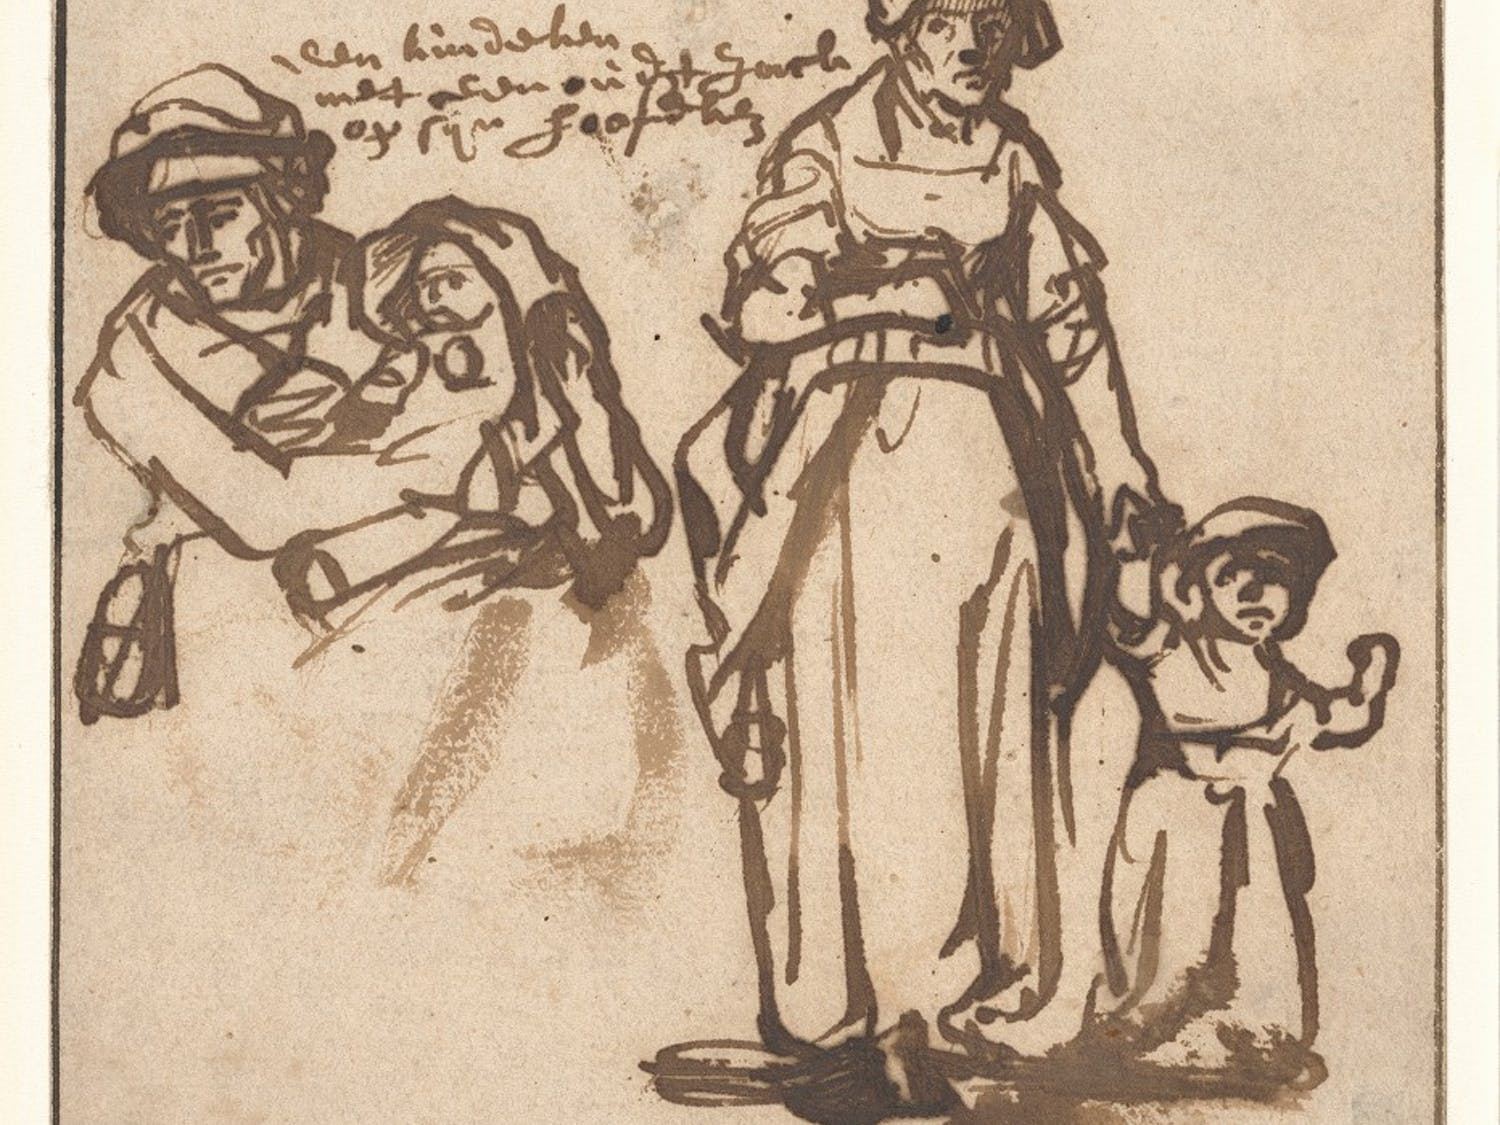 Drawing made by Rembrandt that will on display in the Ackland. Photo courtesy of Ariel Fielding.